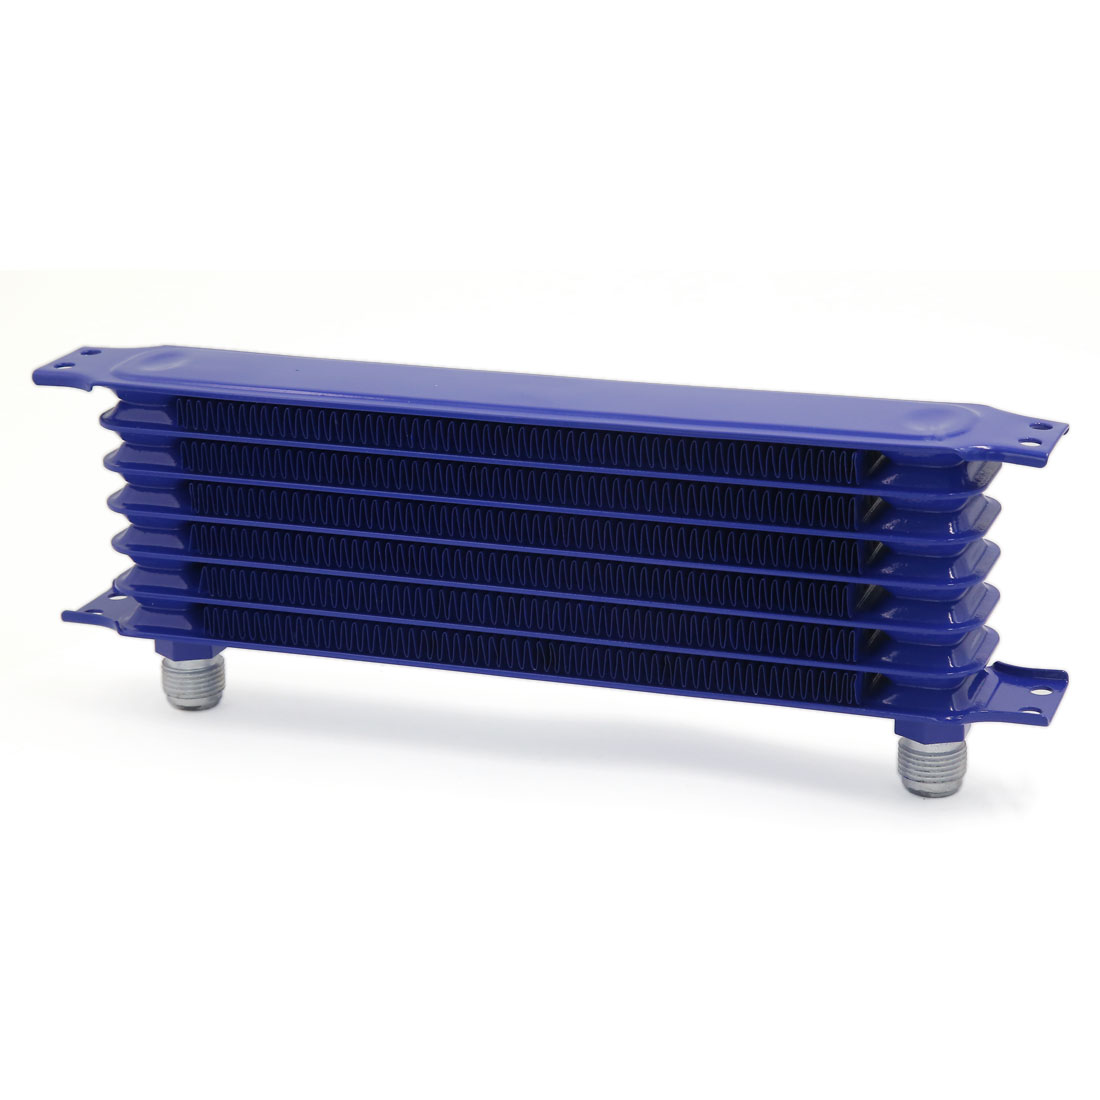 Blue Aluminum Oil Cooler Tank Core 7 Rows for Auto Car